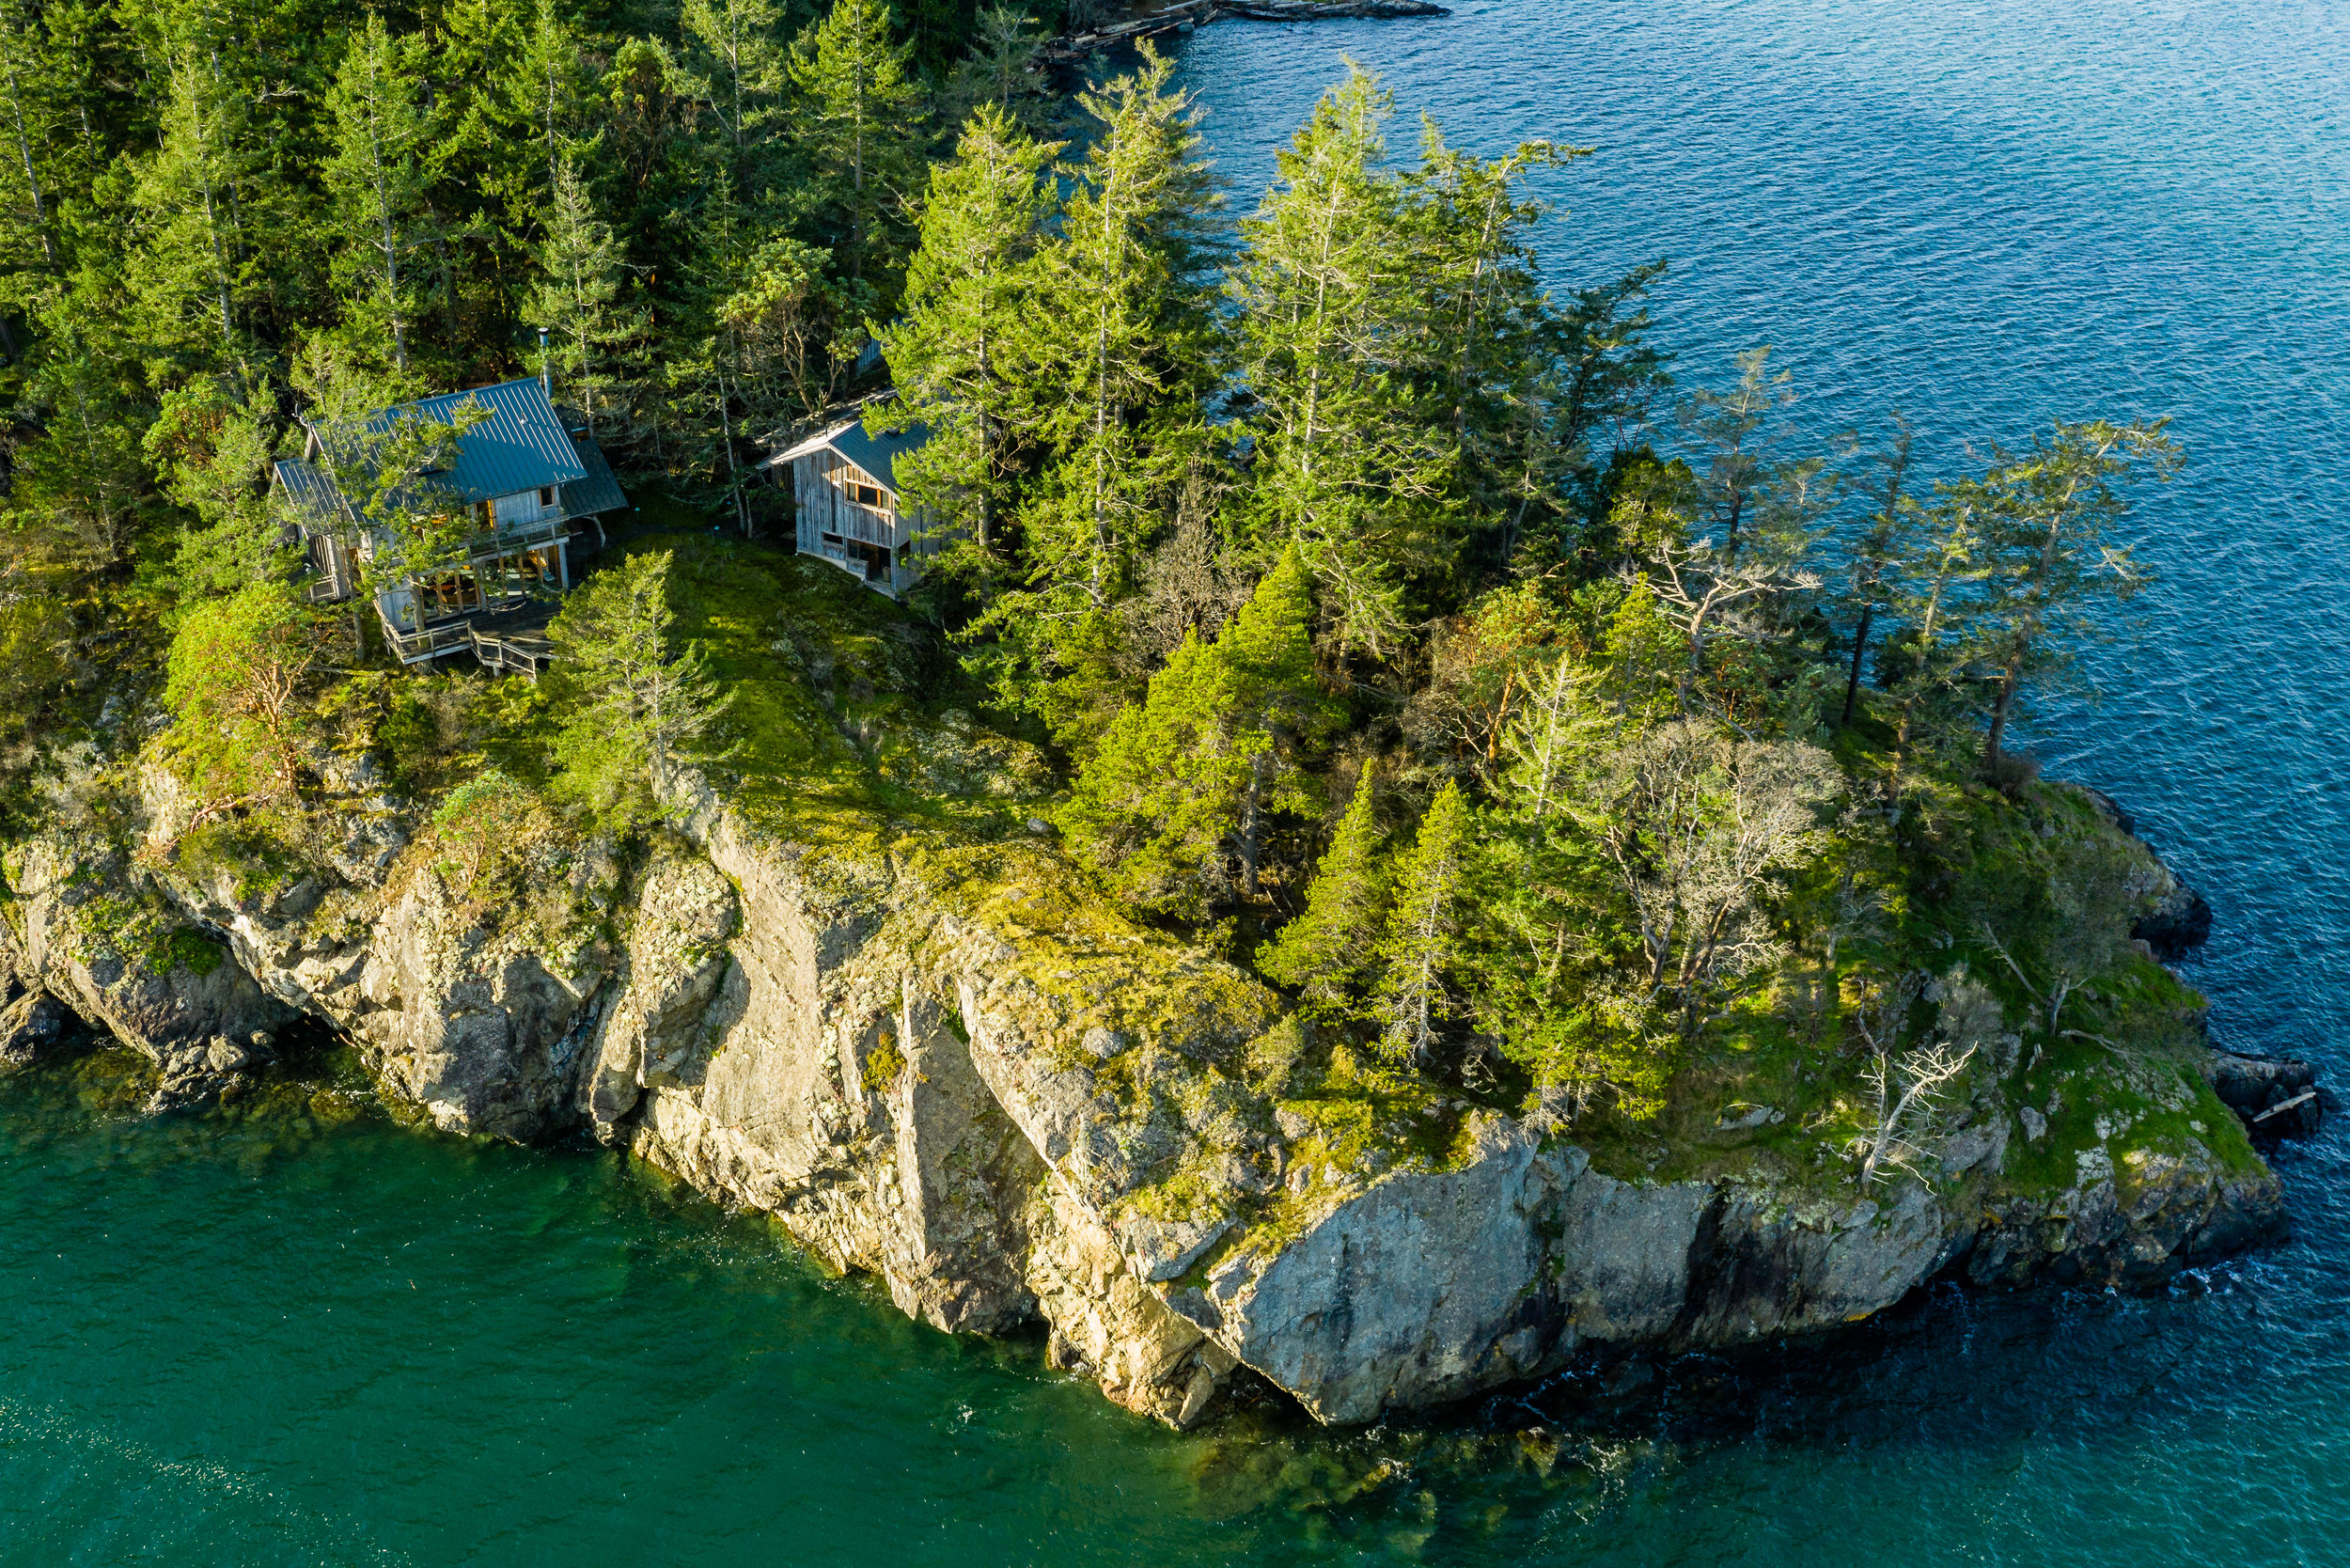 764 Broken Point Rd, Shaw Island  |  $1,150,000